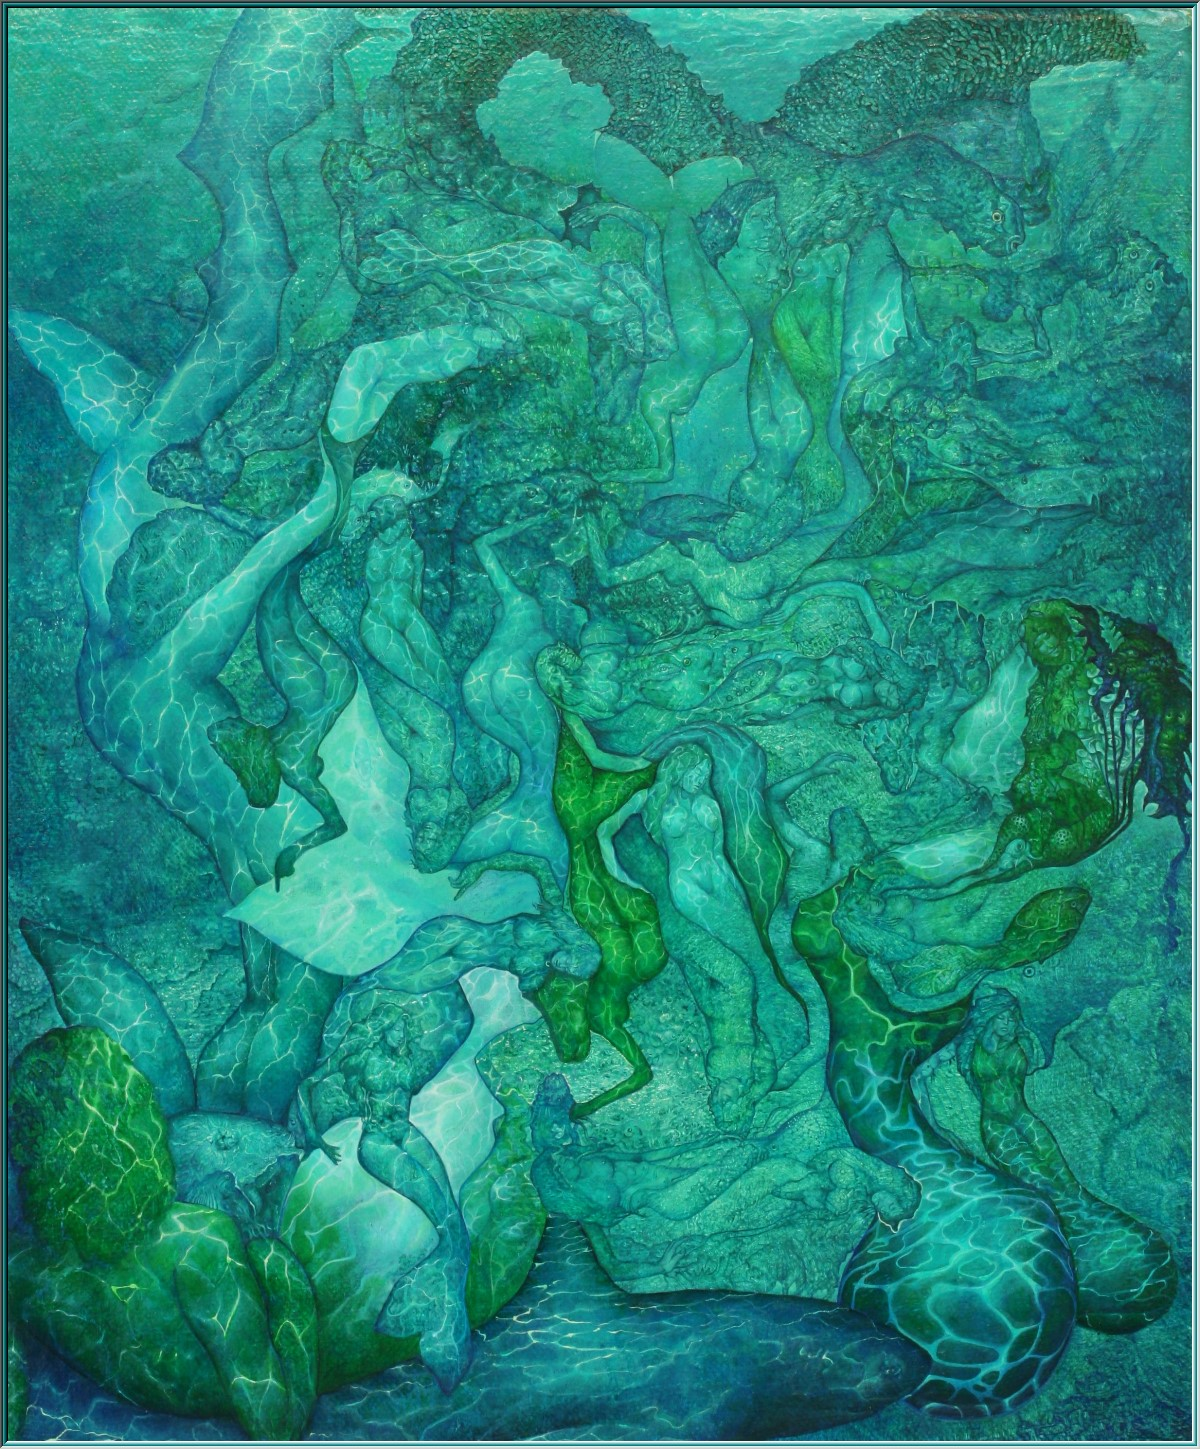 Sirens, mermaids, Arielle, mermaid, water spirits, painting, oil,